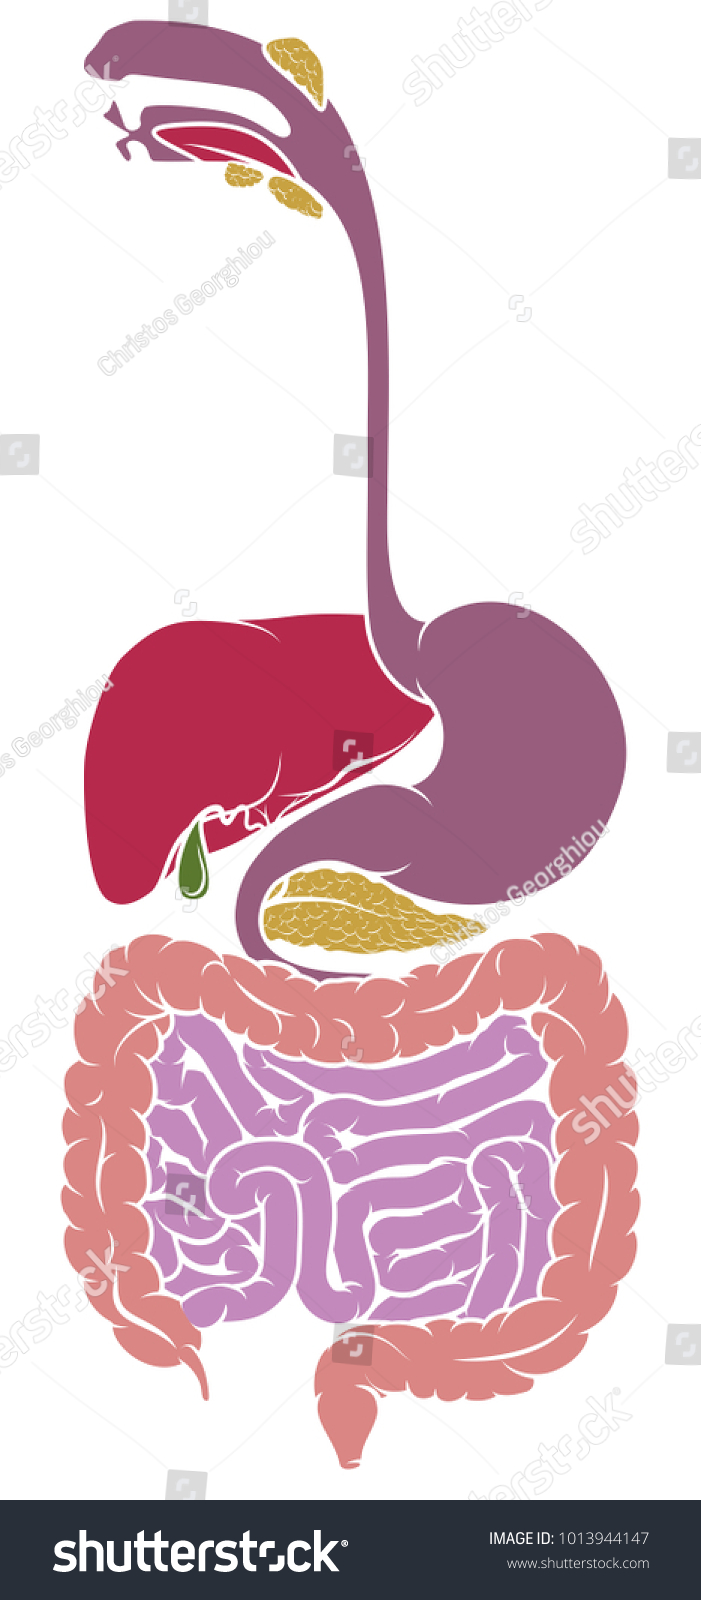 Human Anatomy Diagram Gut Gastrointestinal Tract Stock Vector ...